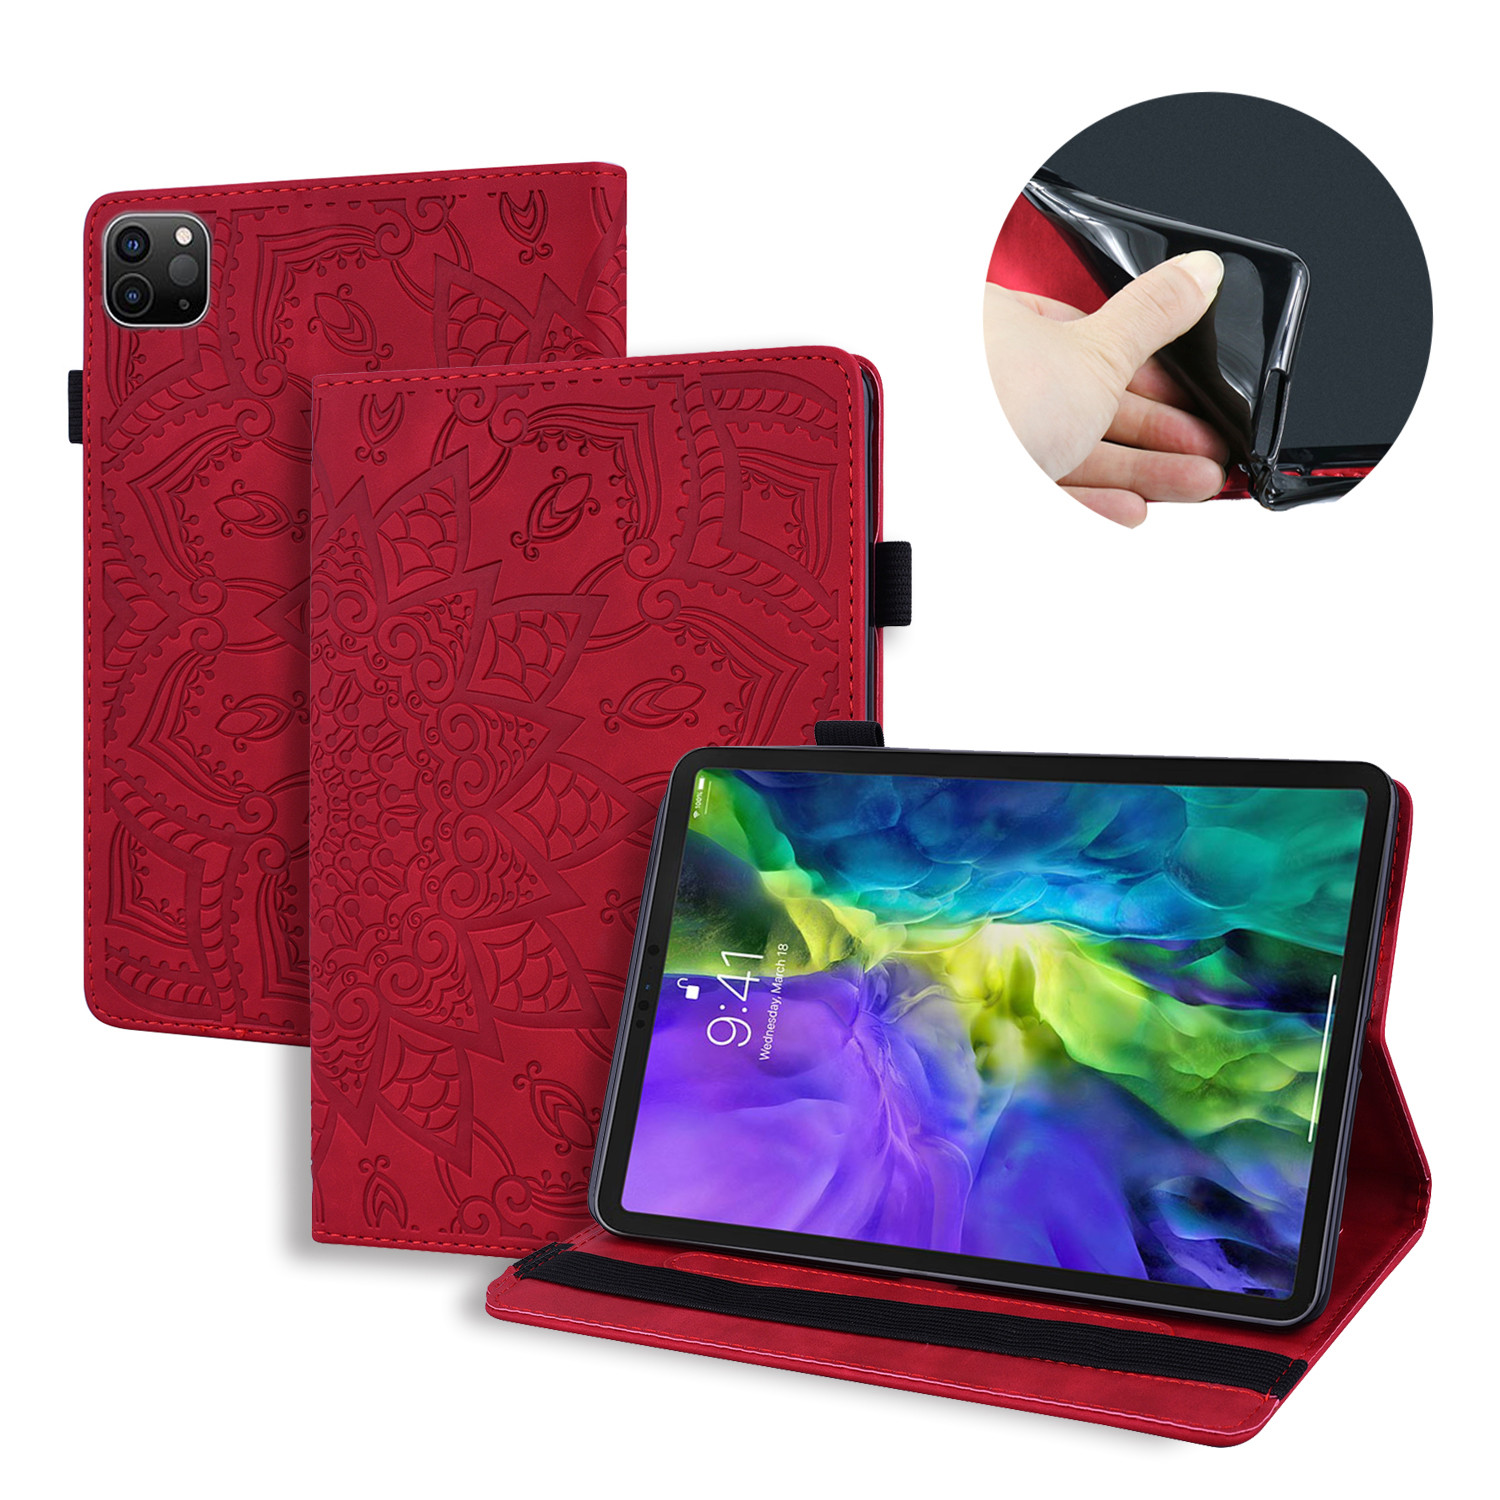 4 Green New Cover For iPad Pro 2020 Case 12 9 4th Generation Tablet Cover Folding 3D Embossed